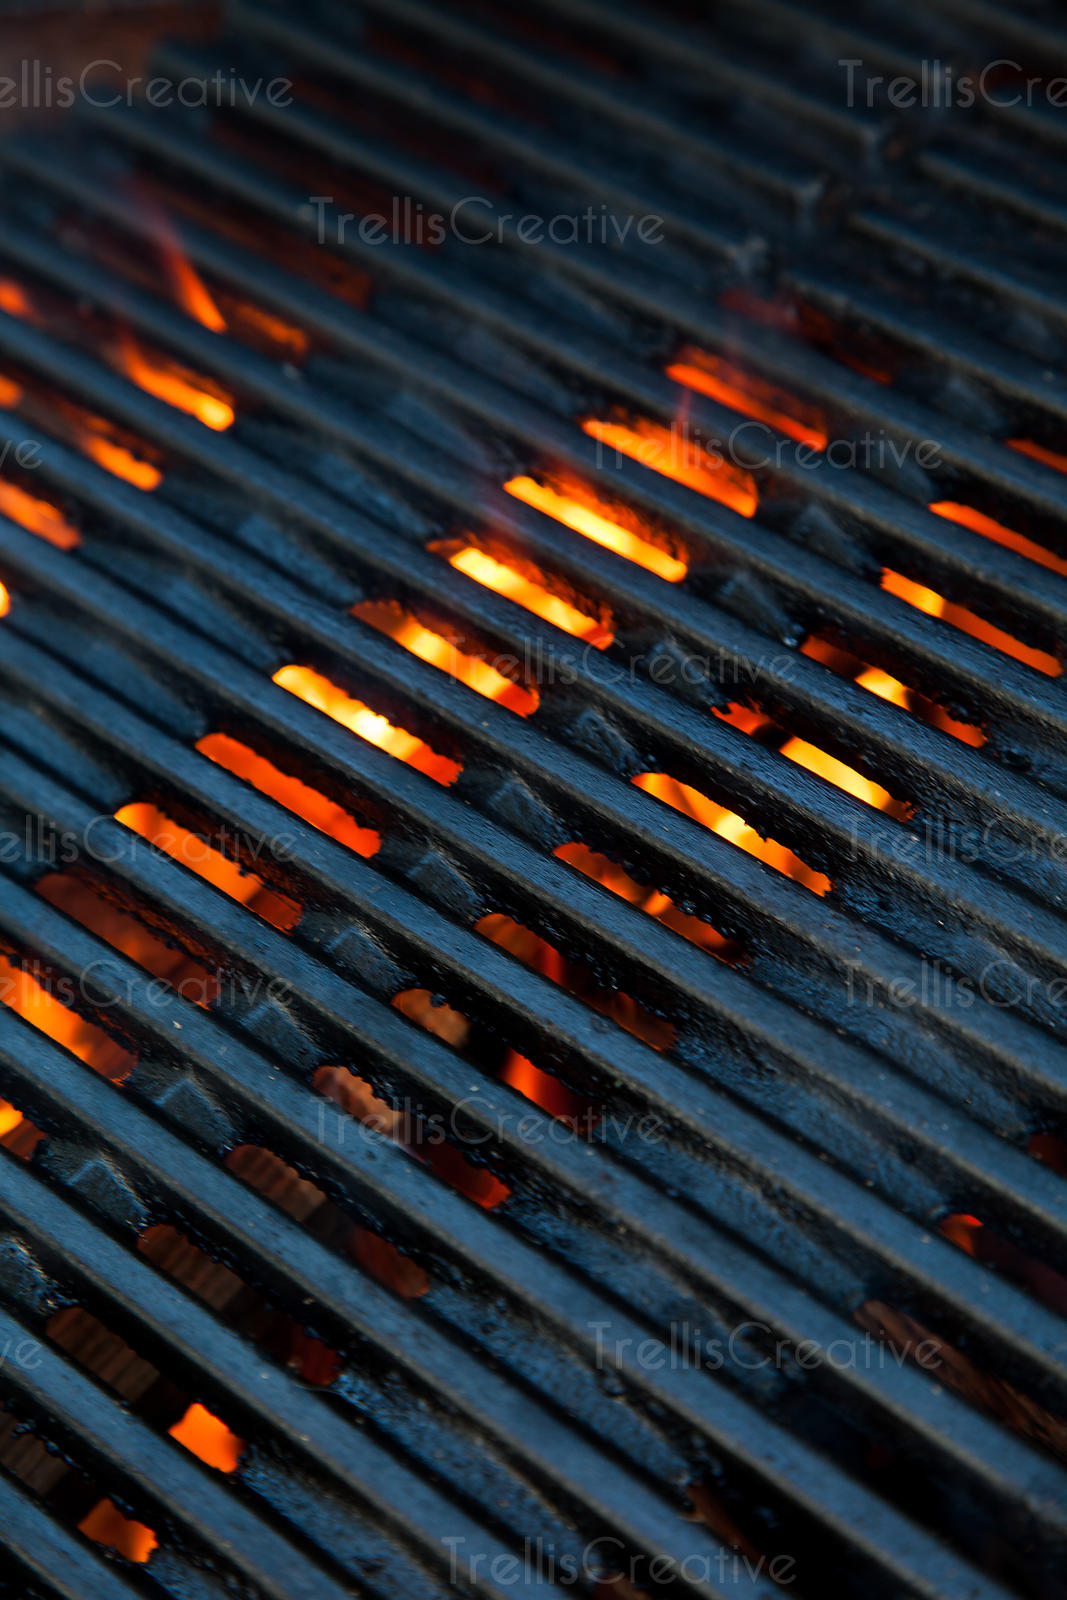 Close-up of hot coals illuminated beneath the grill